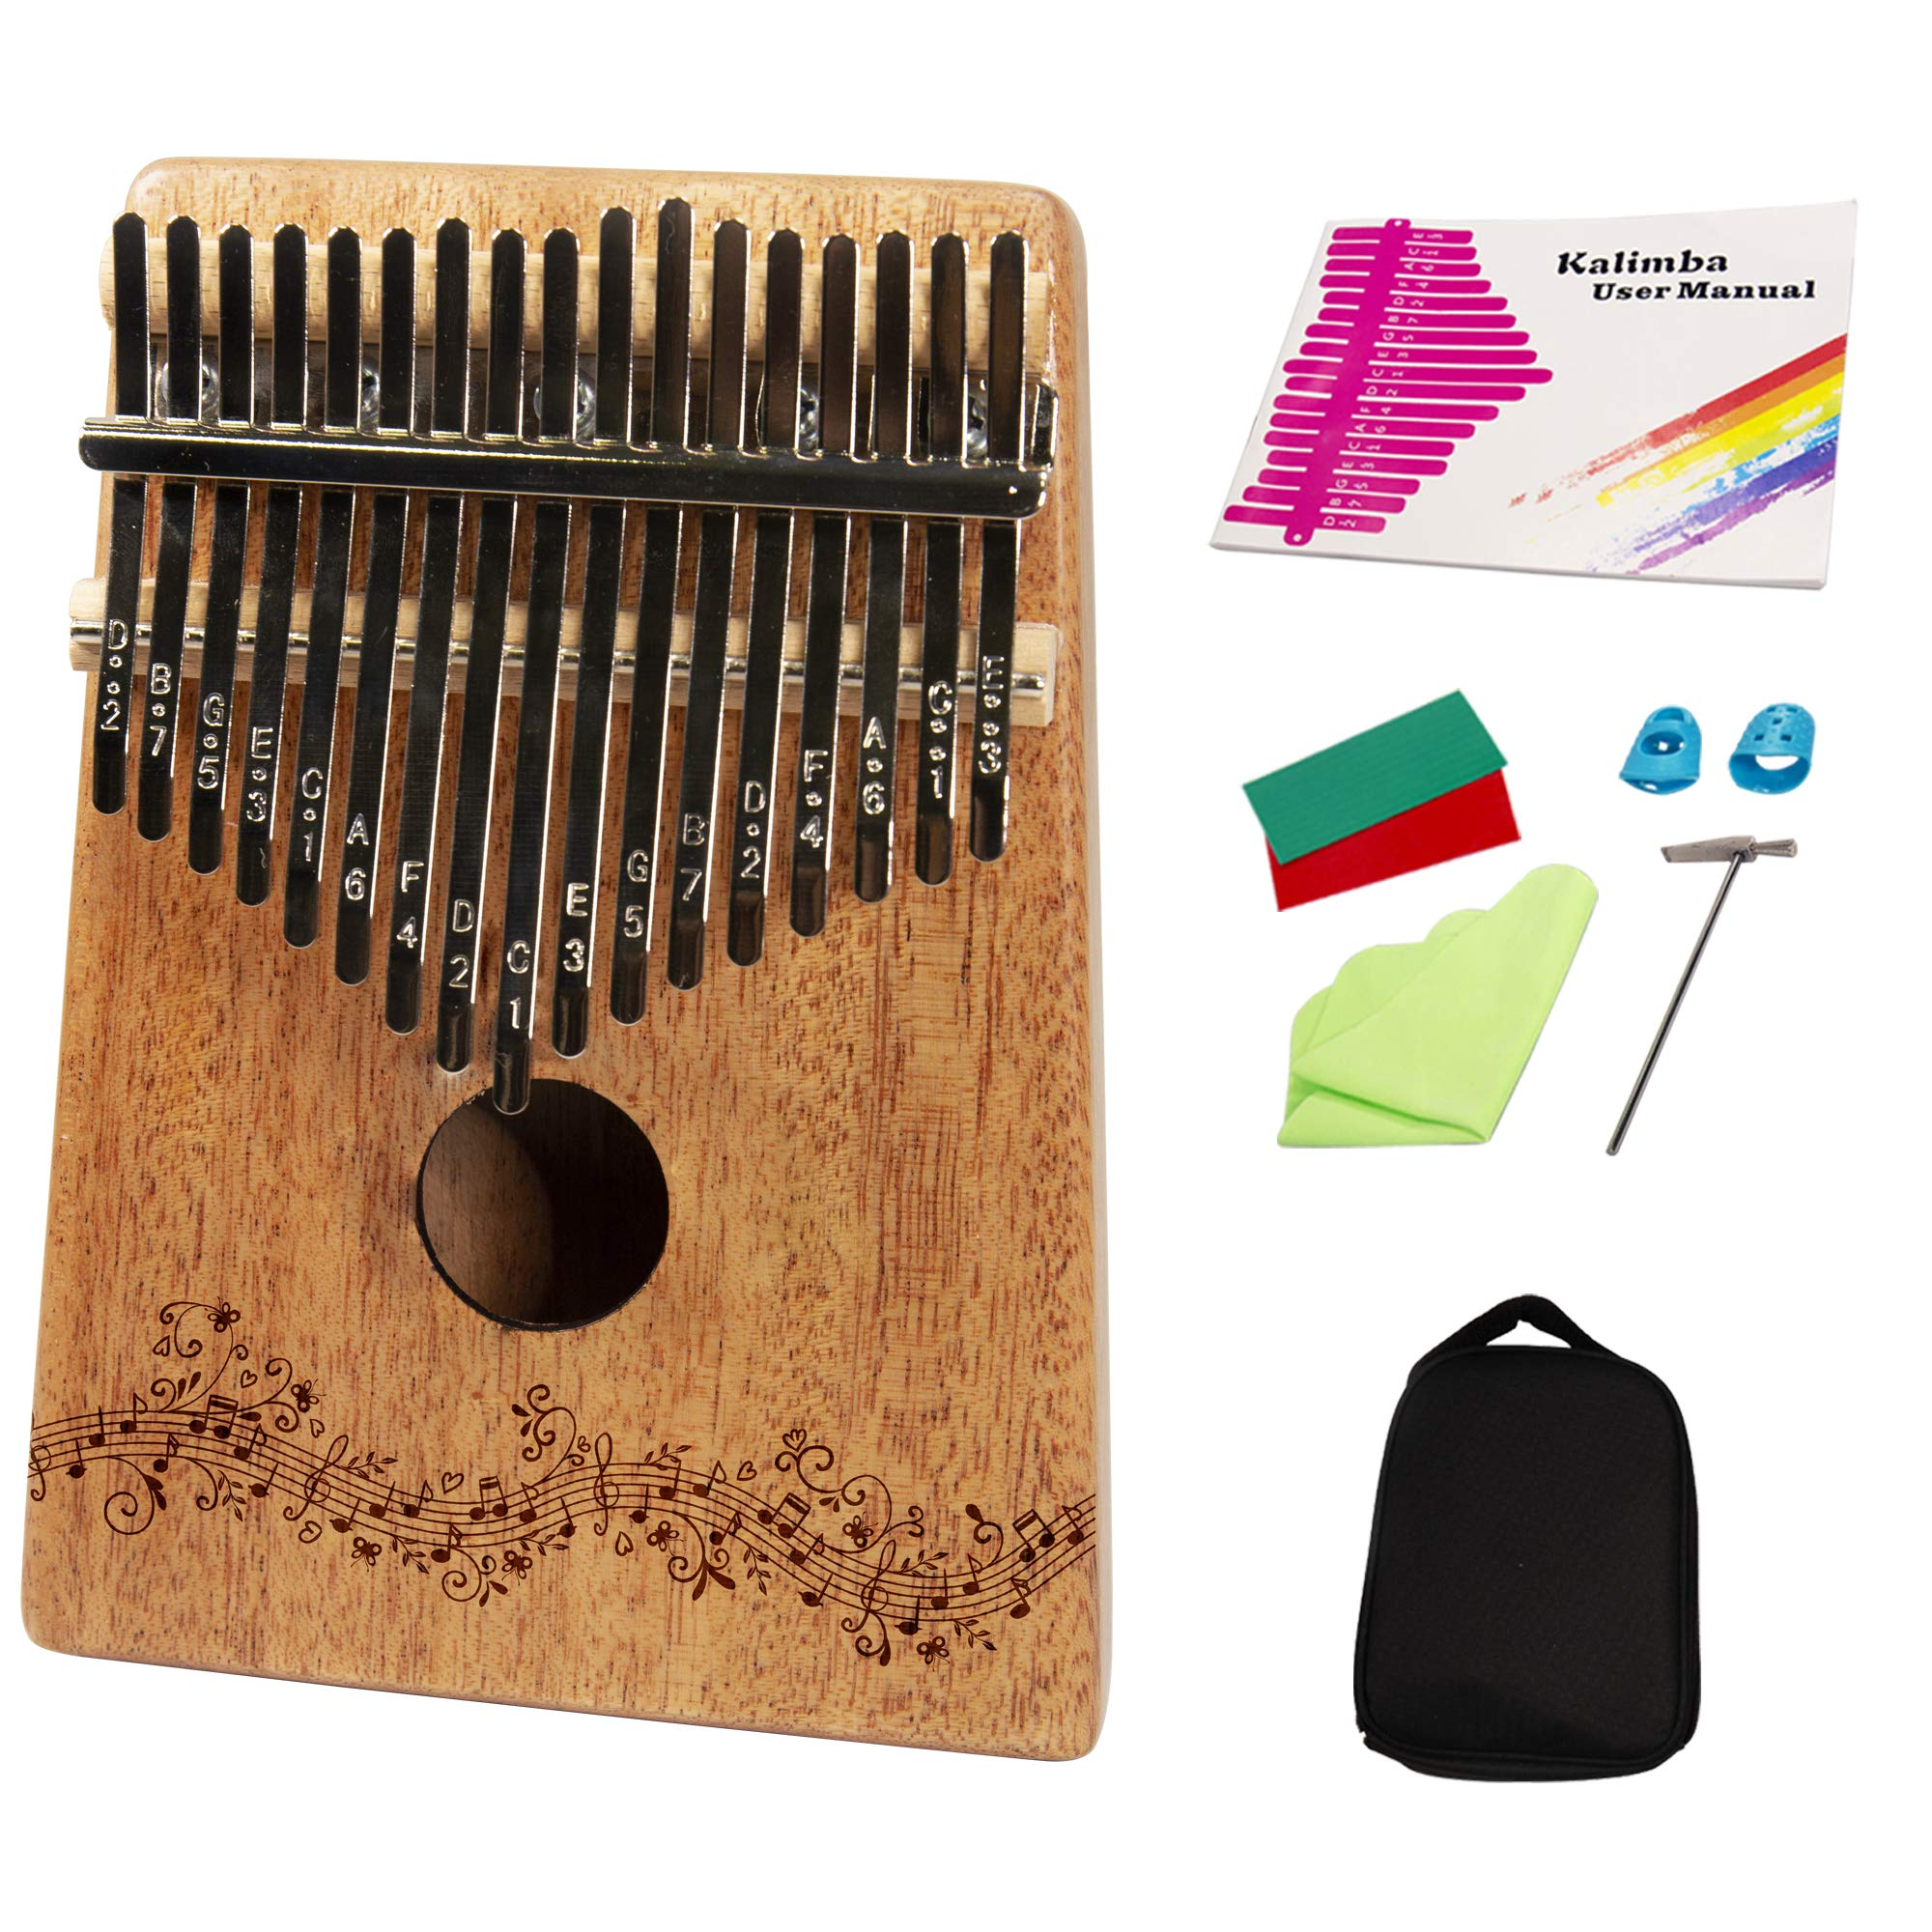 Kalimba Wooden Thumb Piano by Upside Products - 17 engraved key with protective case, beginners instruction book, tuning hammer, cleaning cloth, thumb protectors. Portable, easy learn, relaxation gift by UPSIDE PRODUCTS